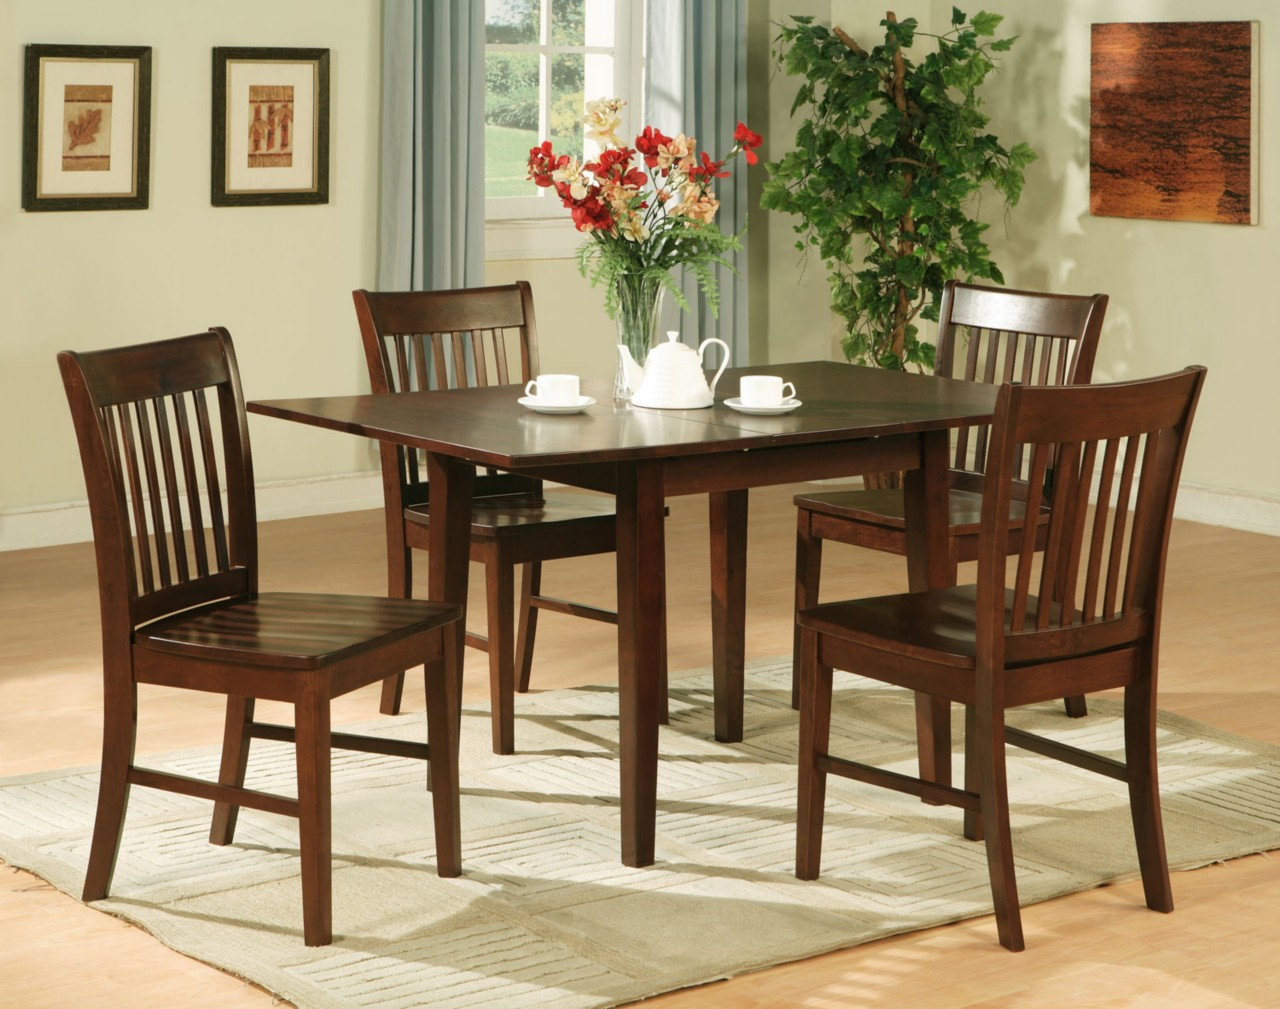 Dining Room Furniture Sets (View 7 of 10)